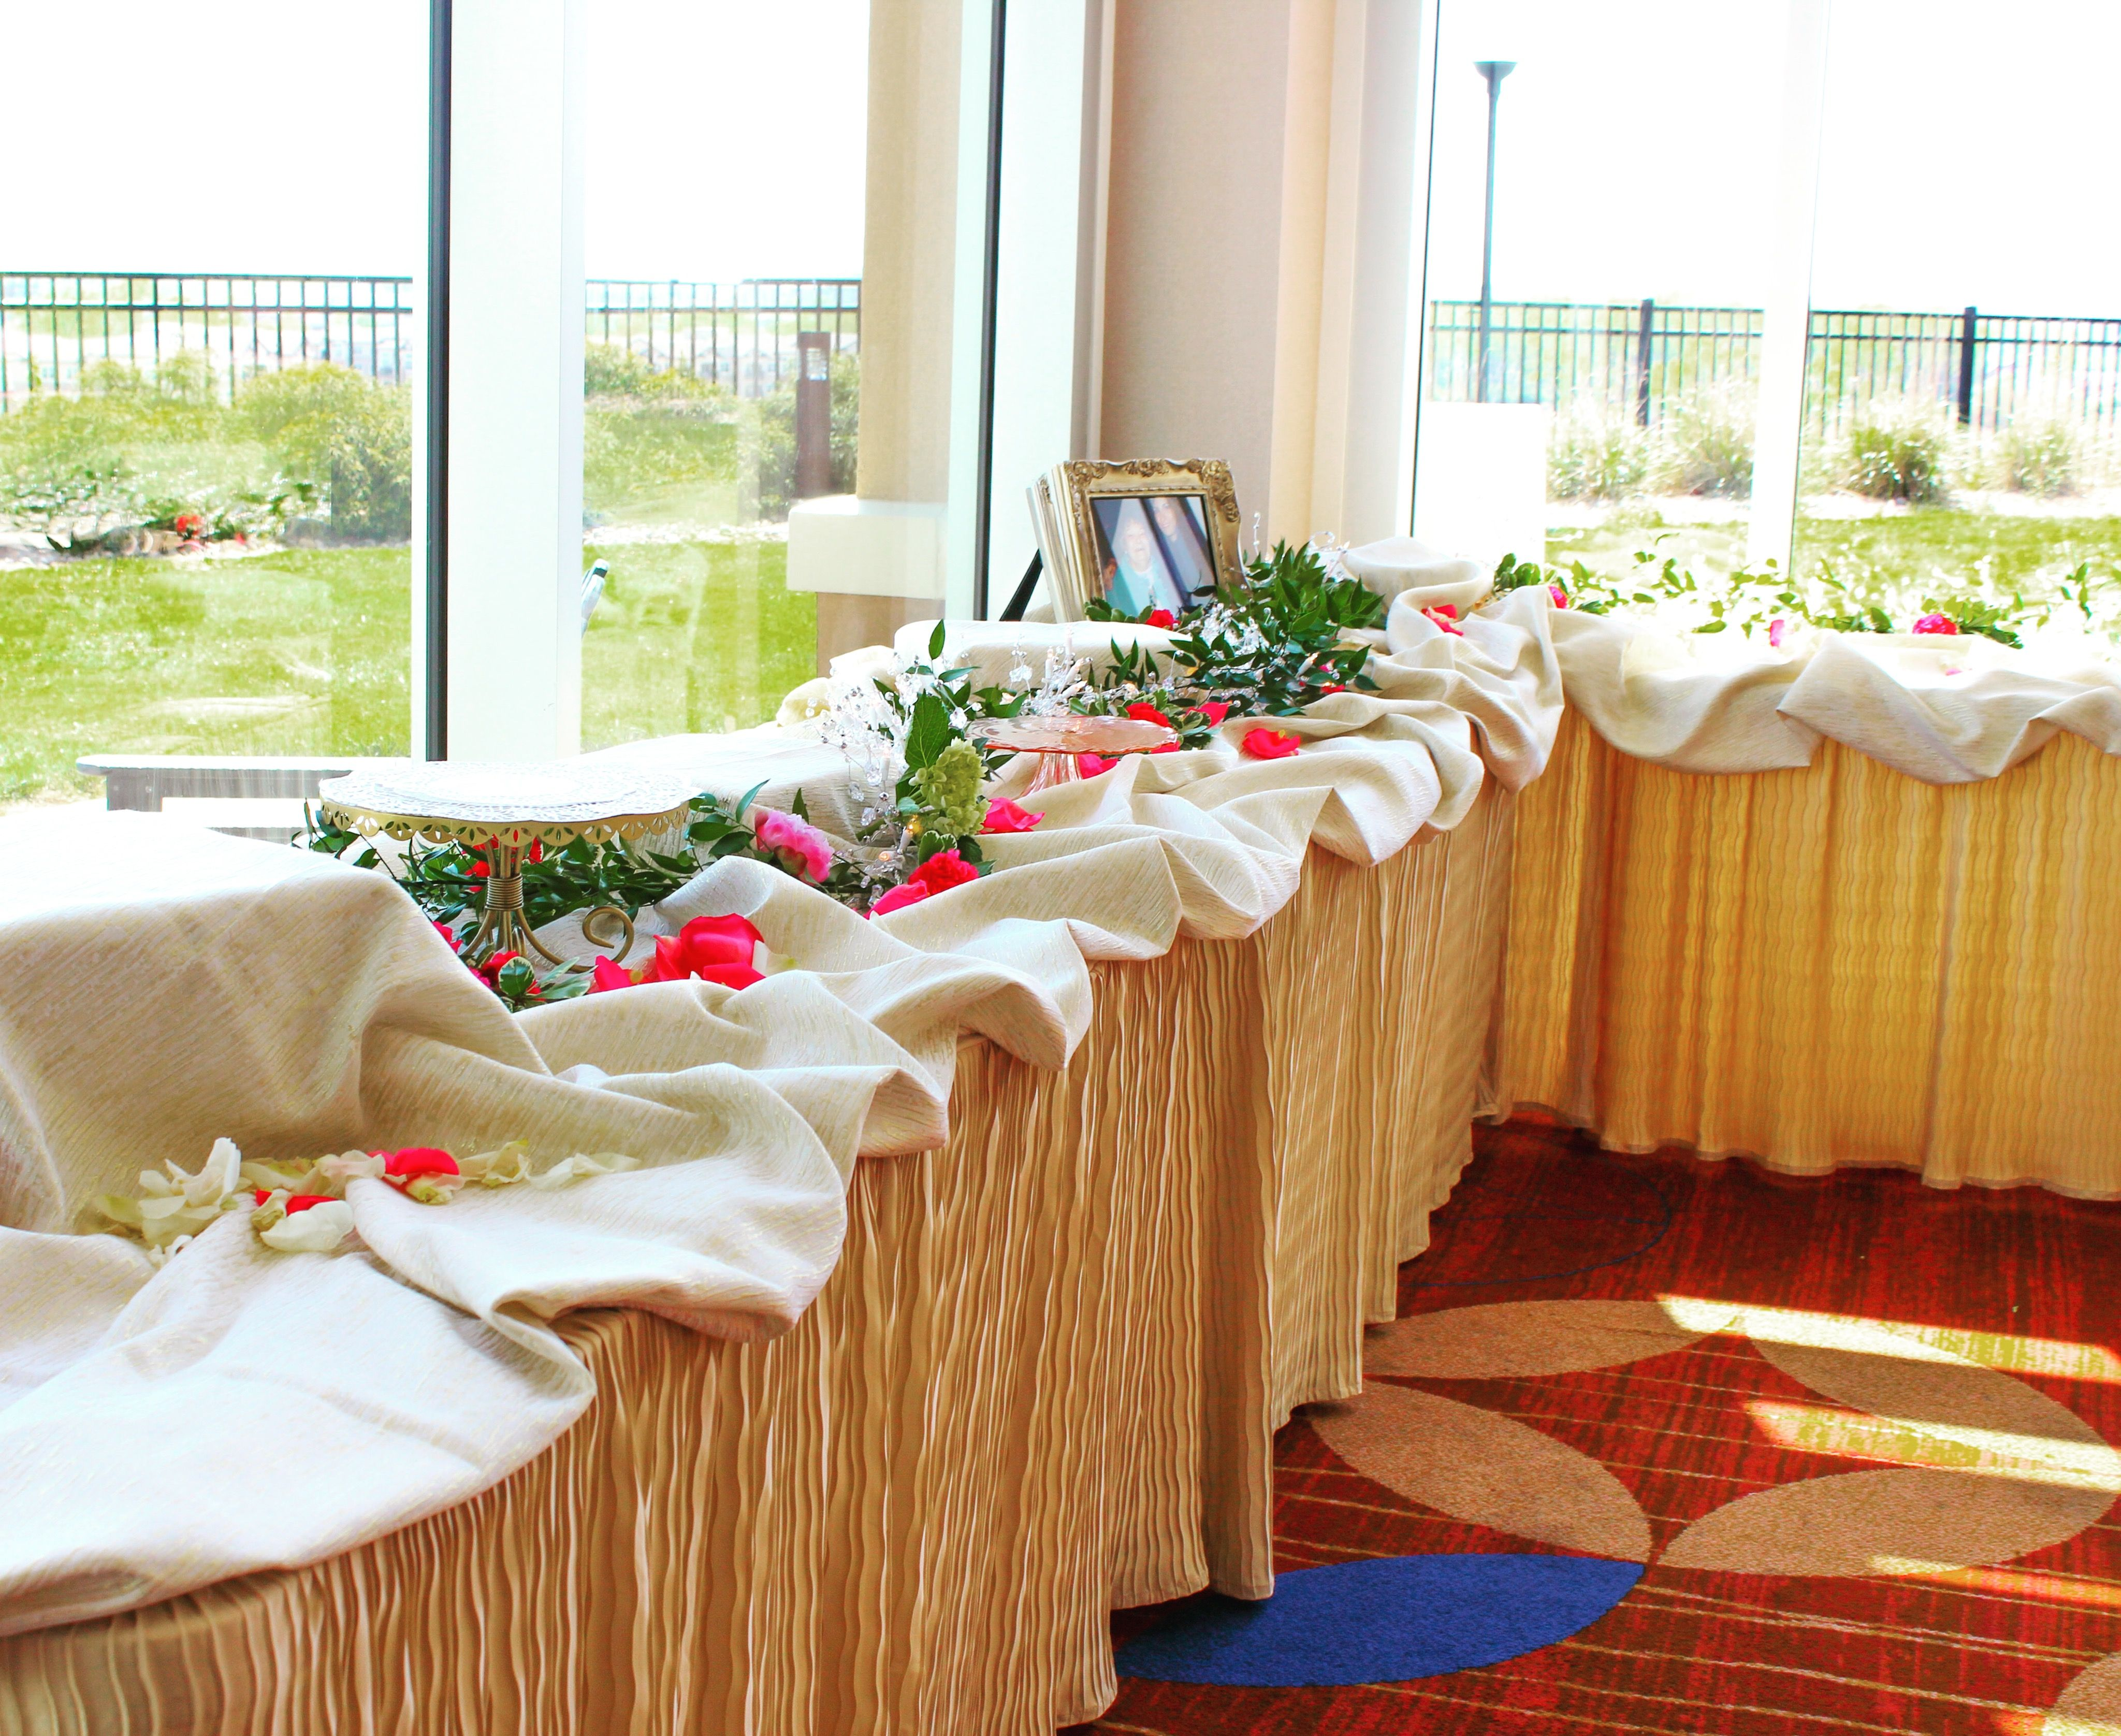 The Folding Table Cloth Home Table Table Cloth Buffet Set Up